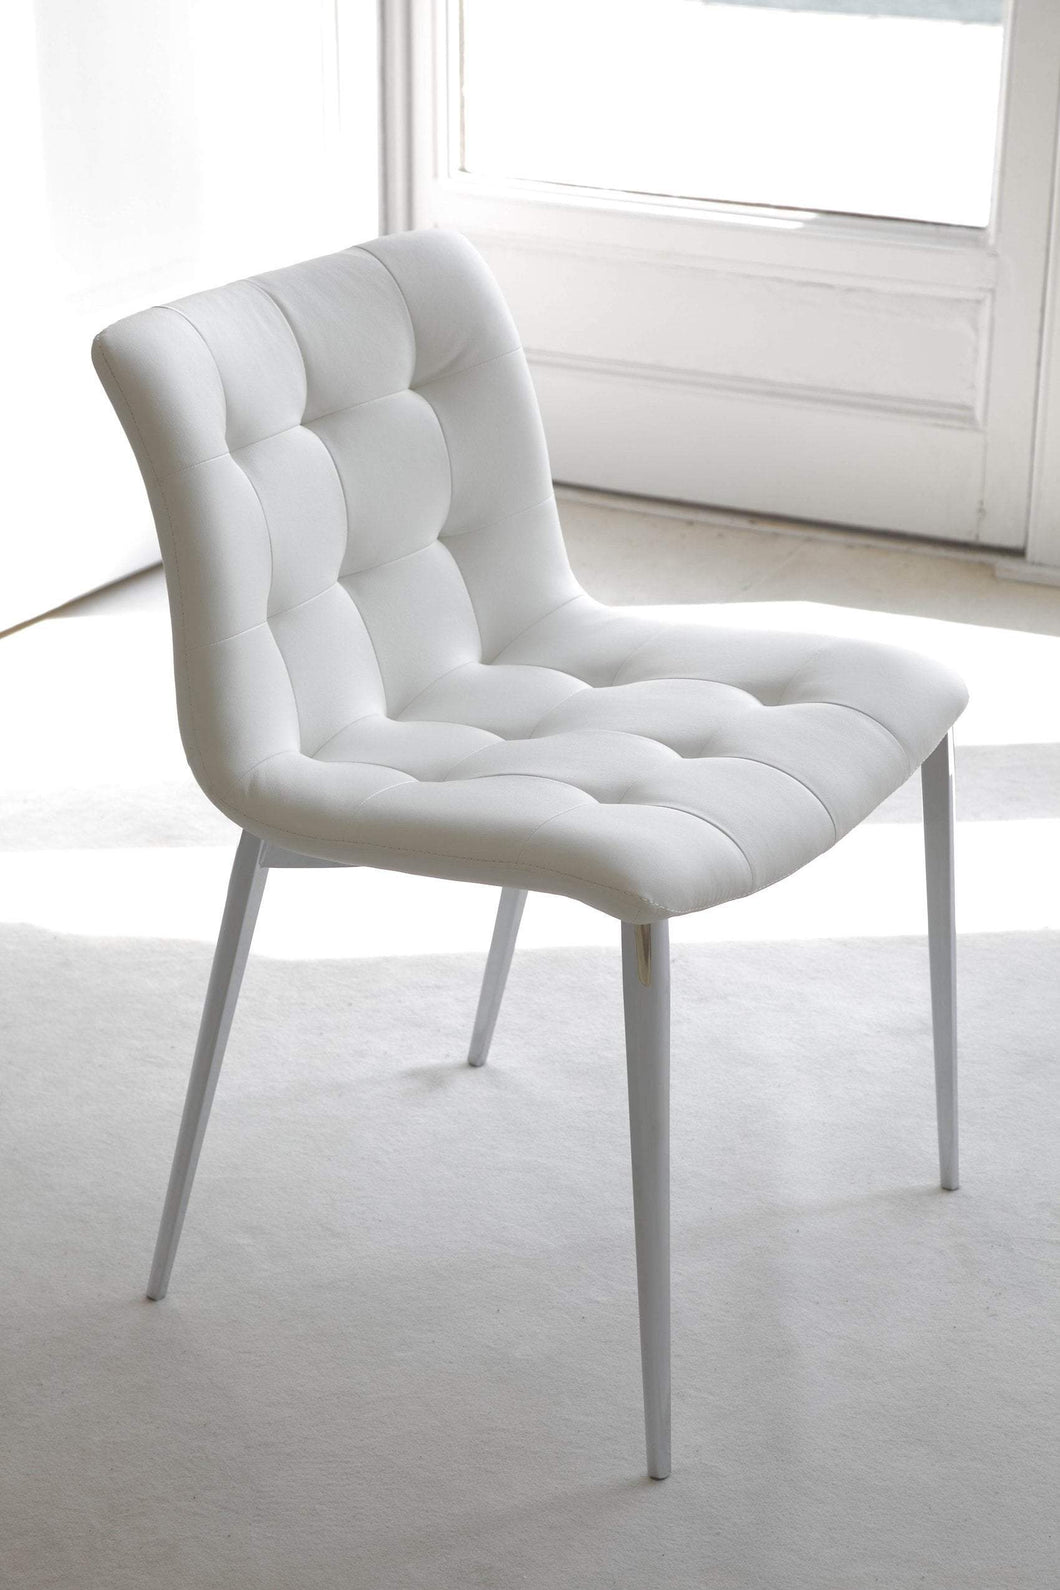 Bontempi Bontempi Kuga Dining Chair